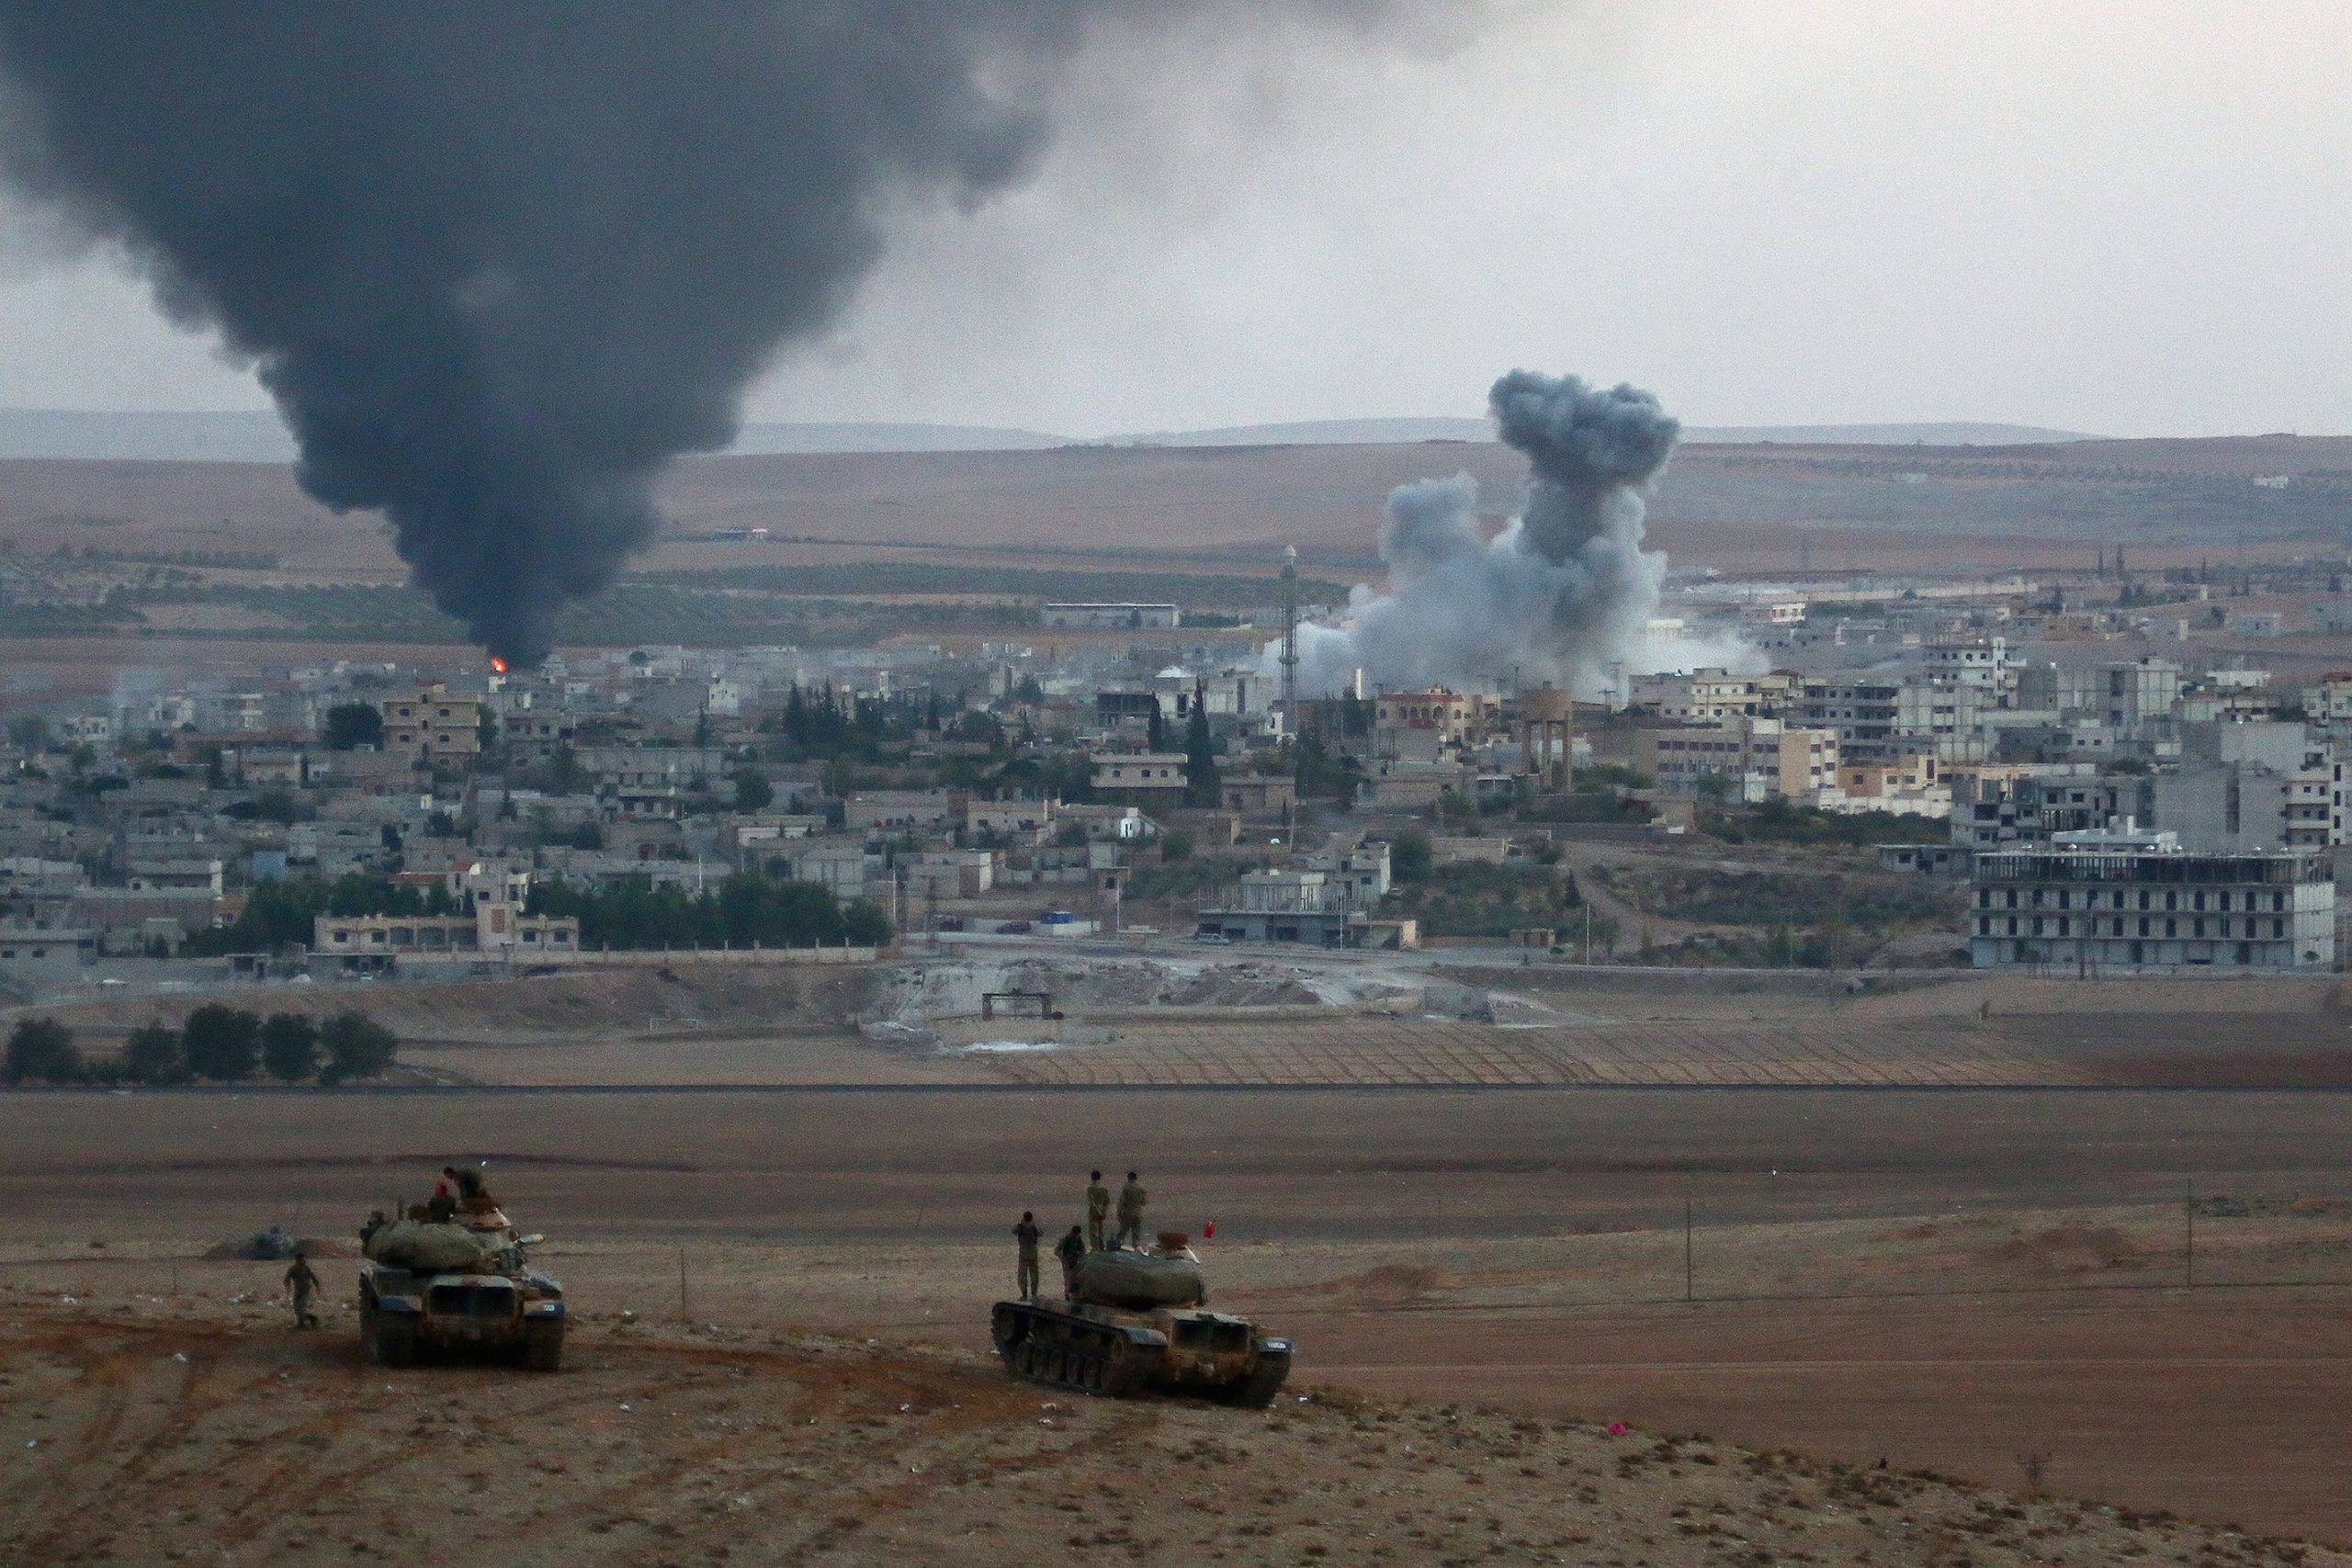 Smoke rises from the clashes in Syria's Ayn al-Arab city (Kobani).